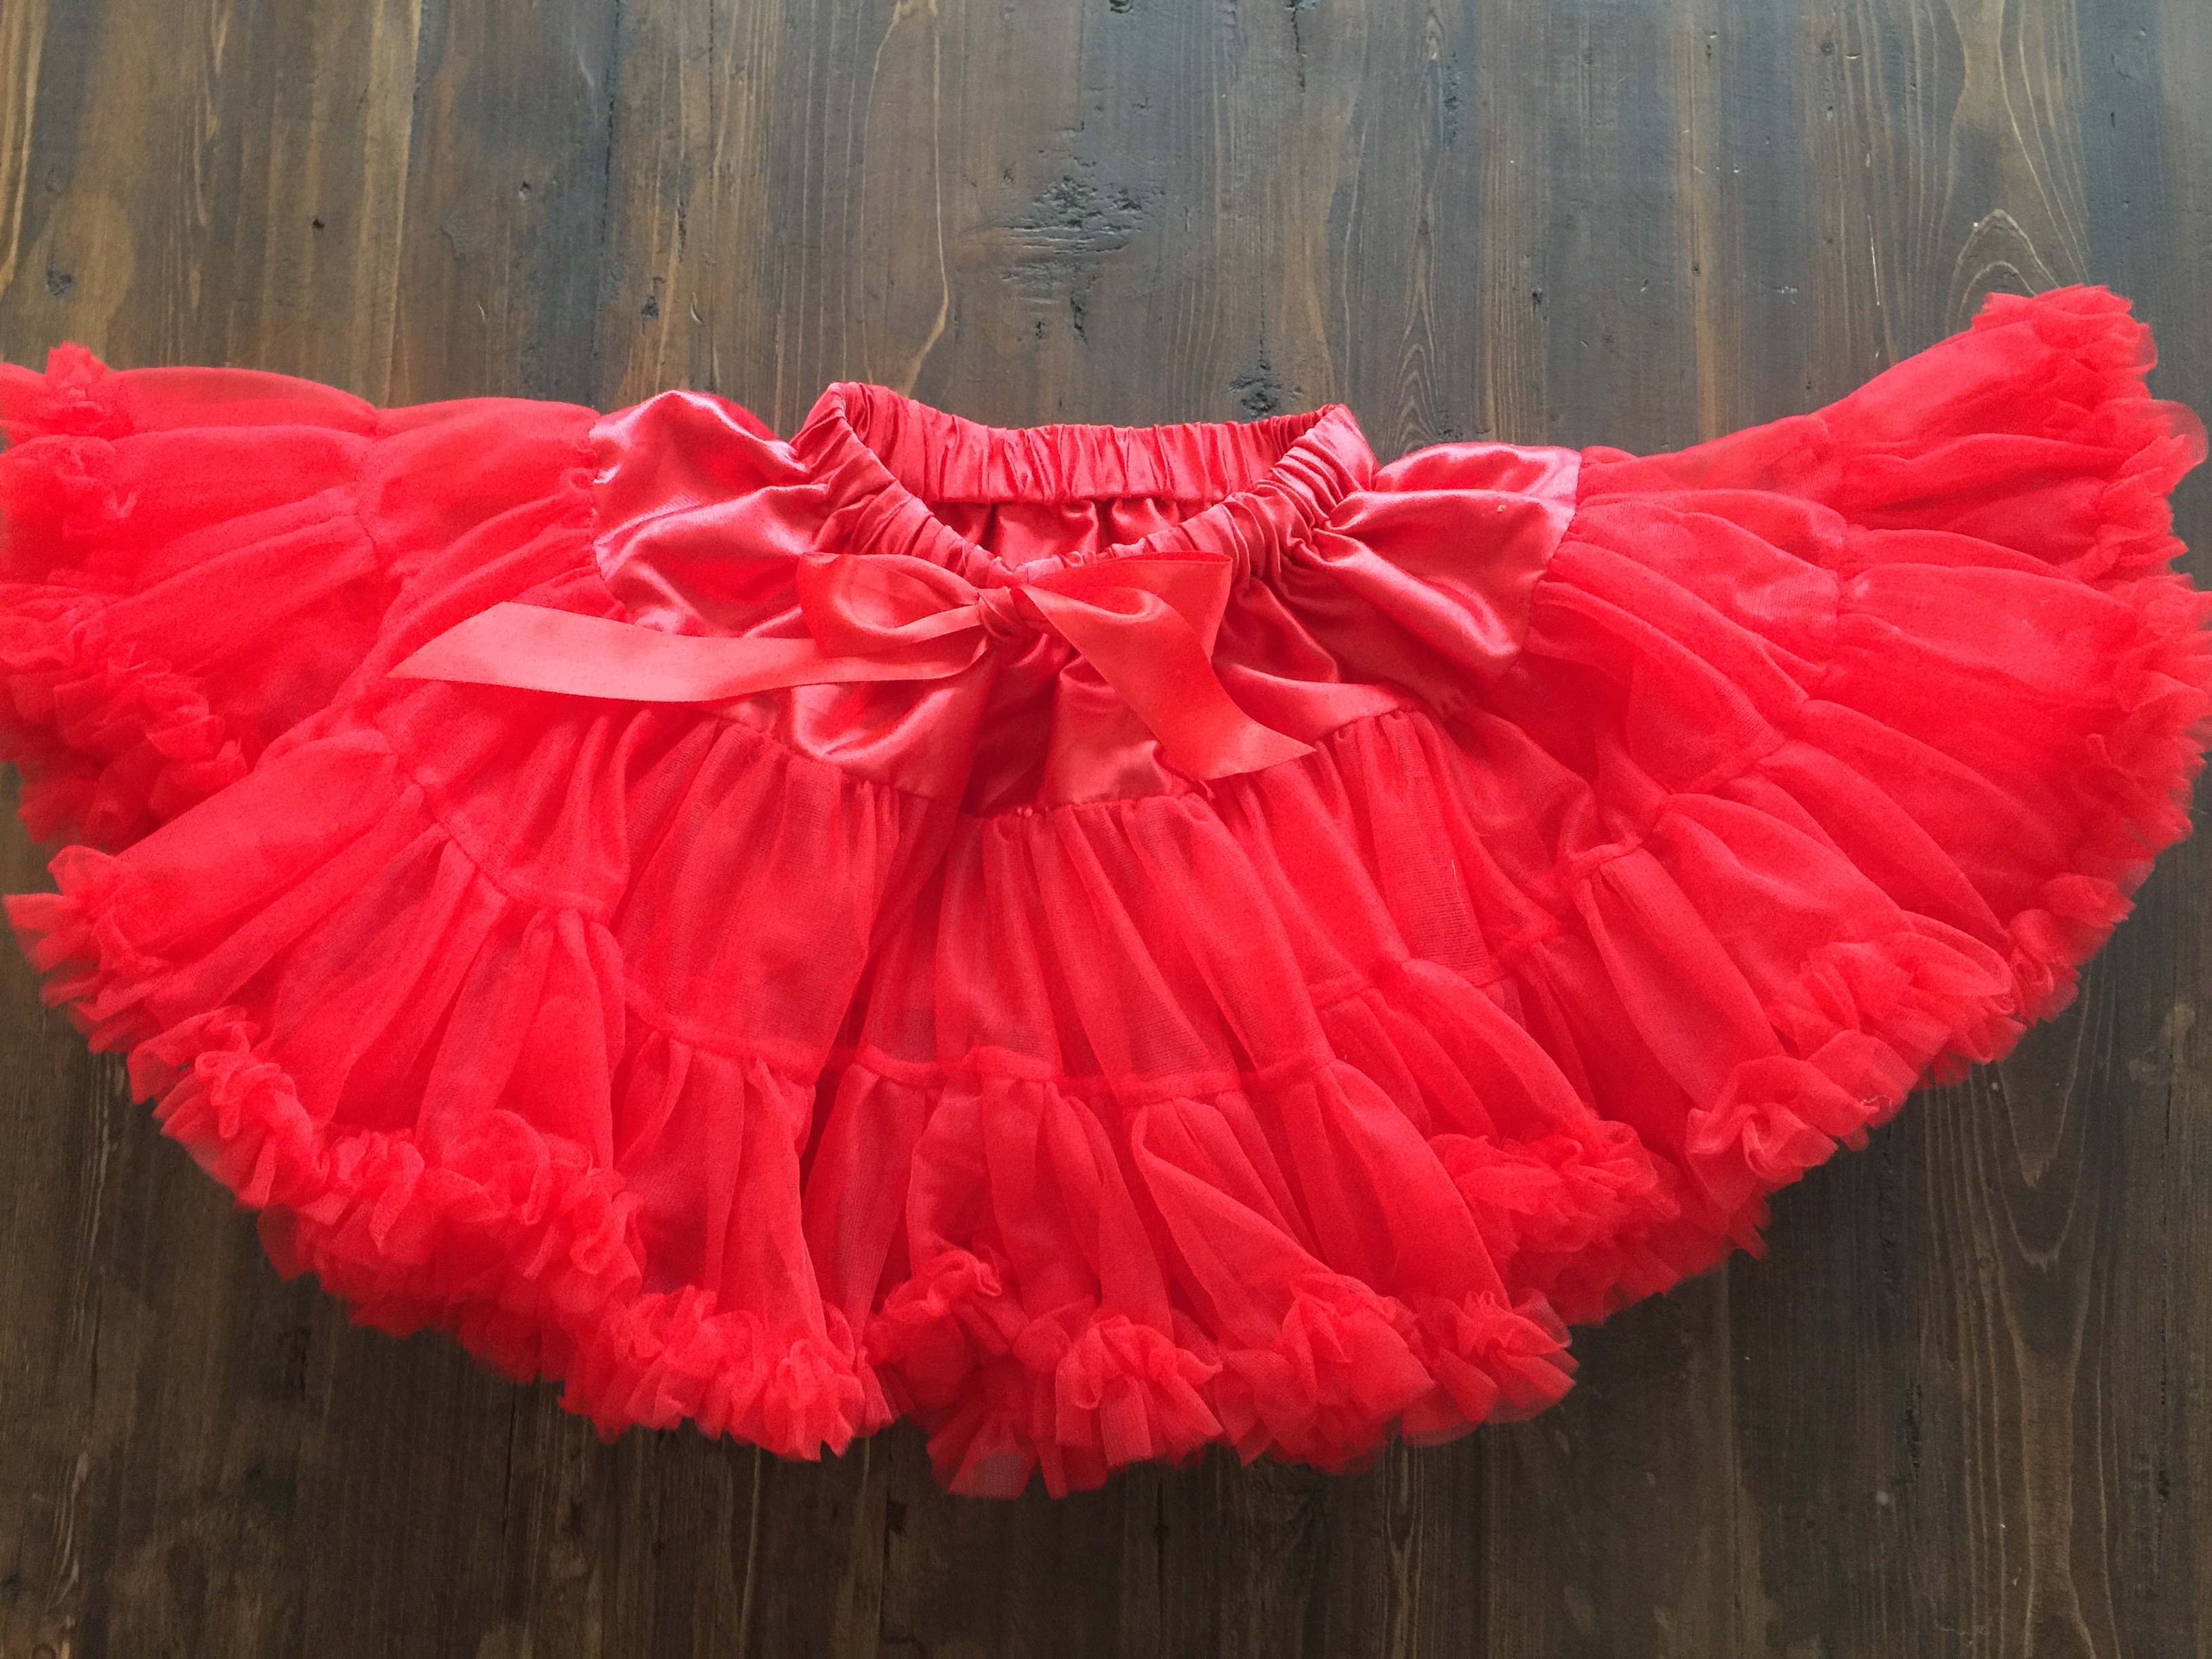 Adorable Frilly Skirts!  $10 OFF